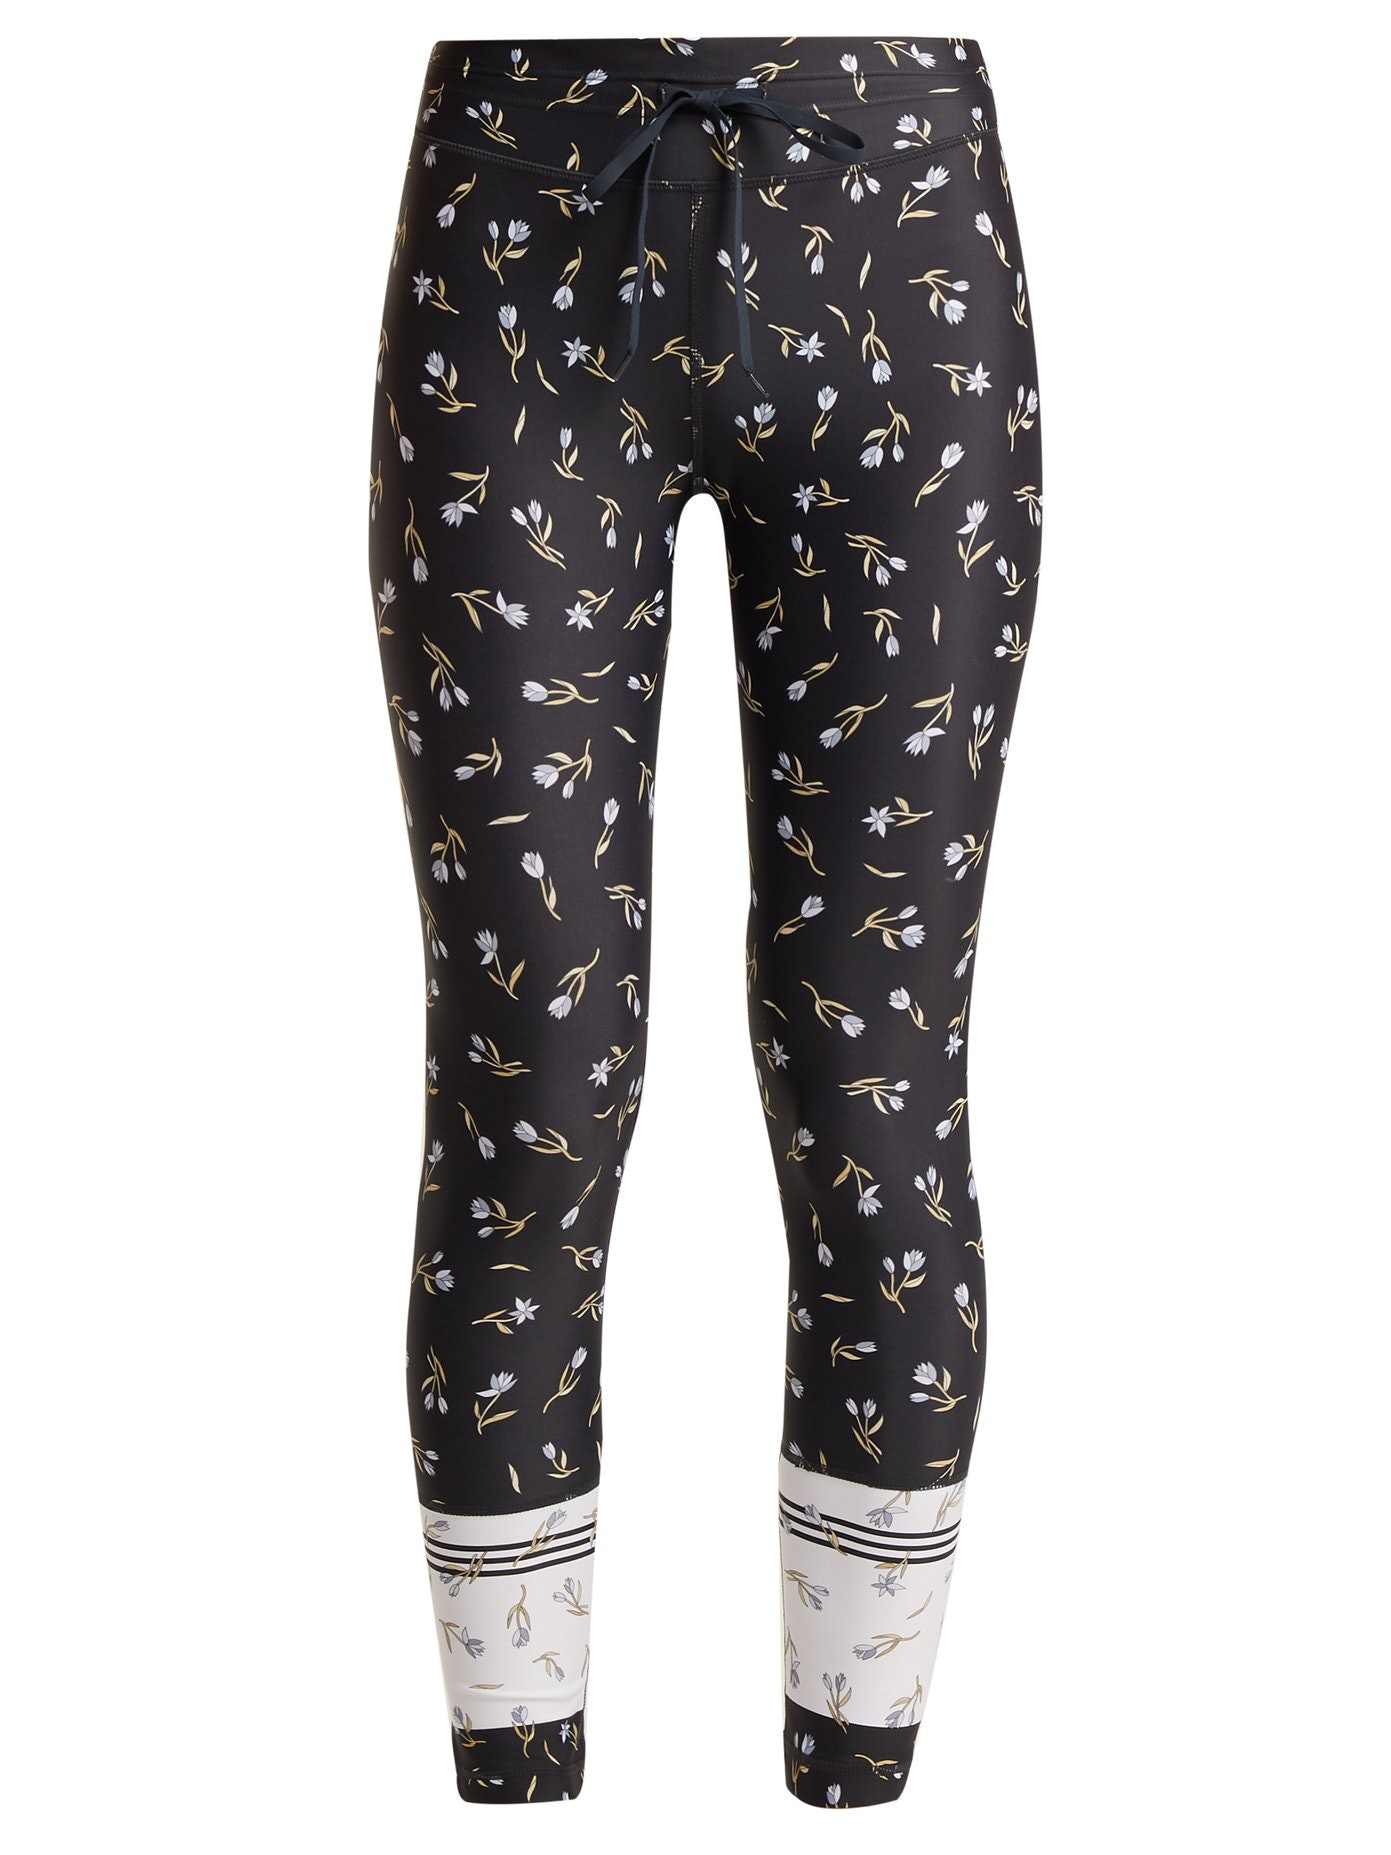 95902658f9a6c The Upside Leggings Are On Sale At MATCHESFASHION, Plus More Activewear Up  To 50 Percent Off